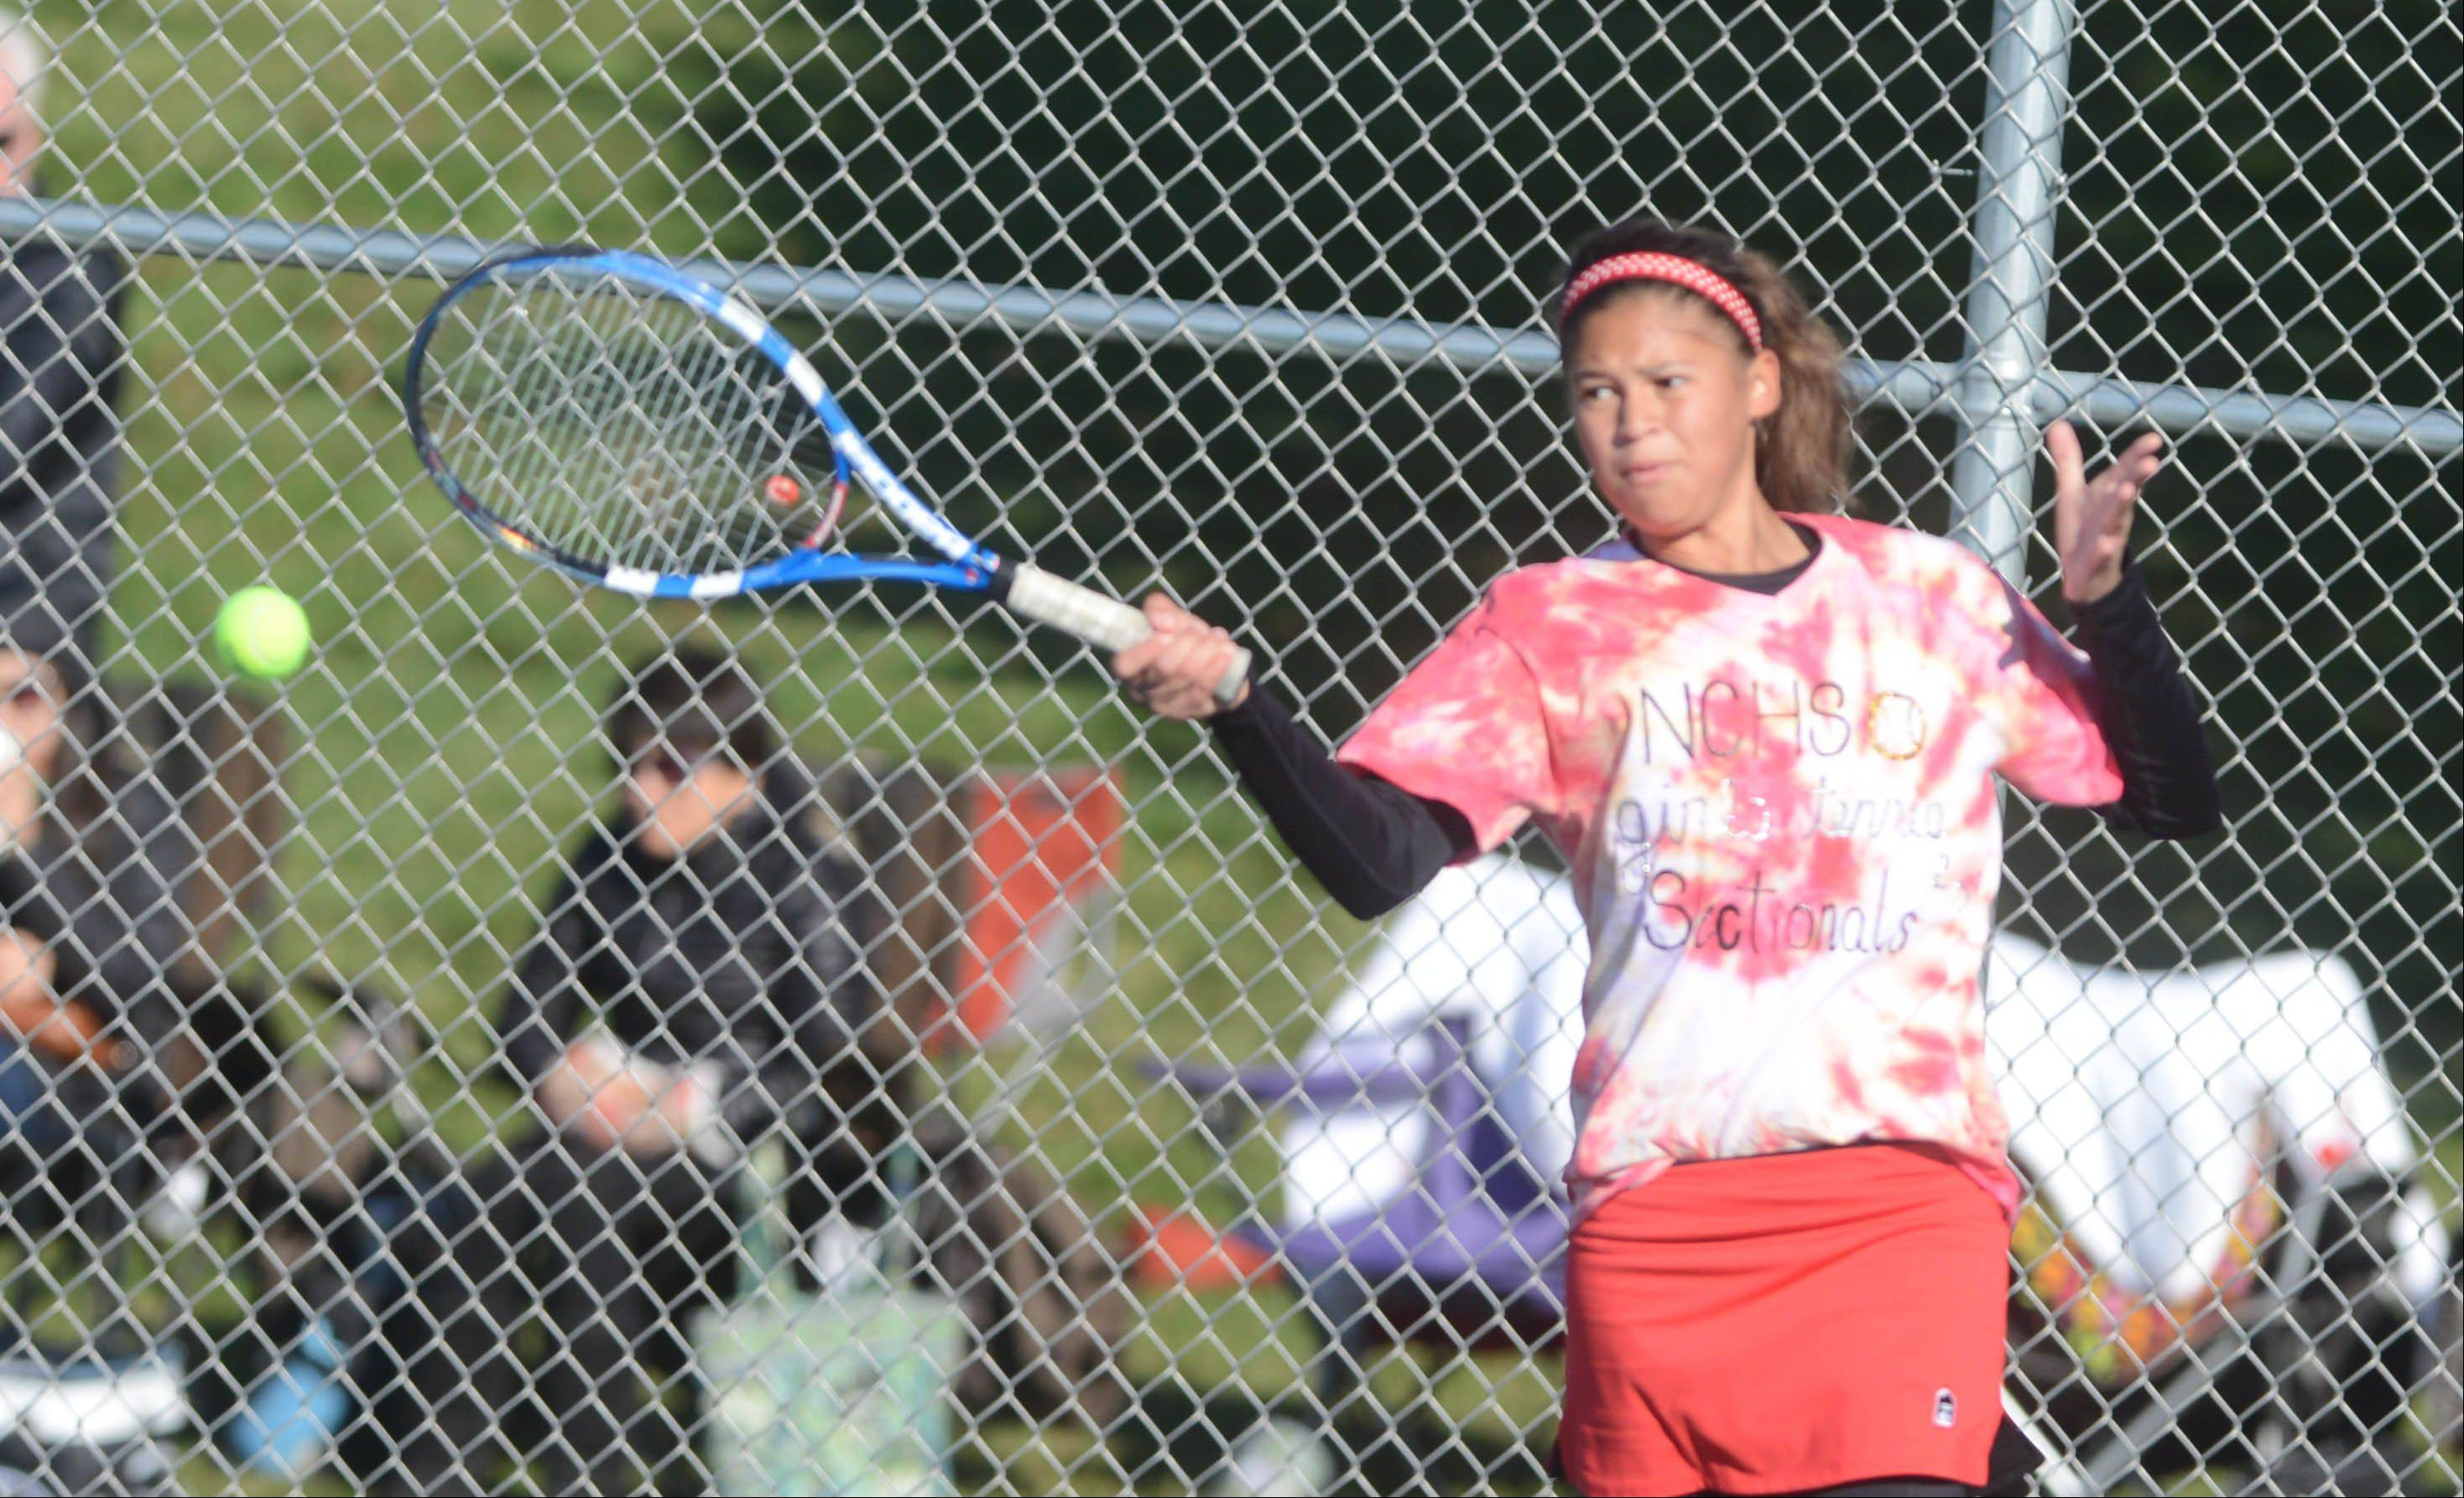 Cass Goldner of Naperville Central takes a swing during the Naperville North girls tennis sectional Saturday. She was playing with teammate Cindy Liu.